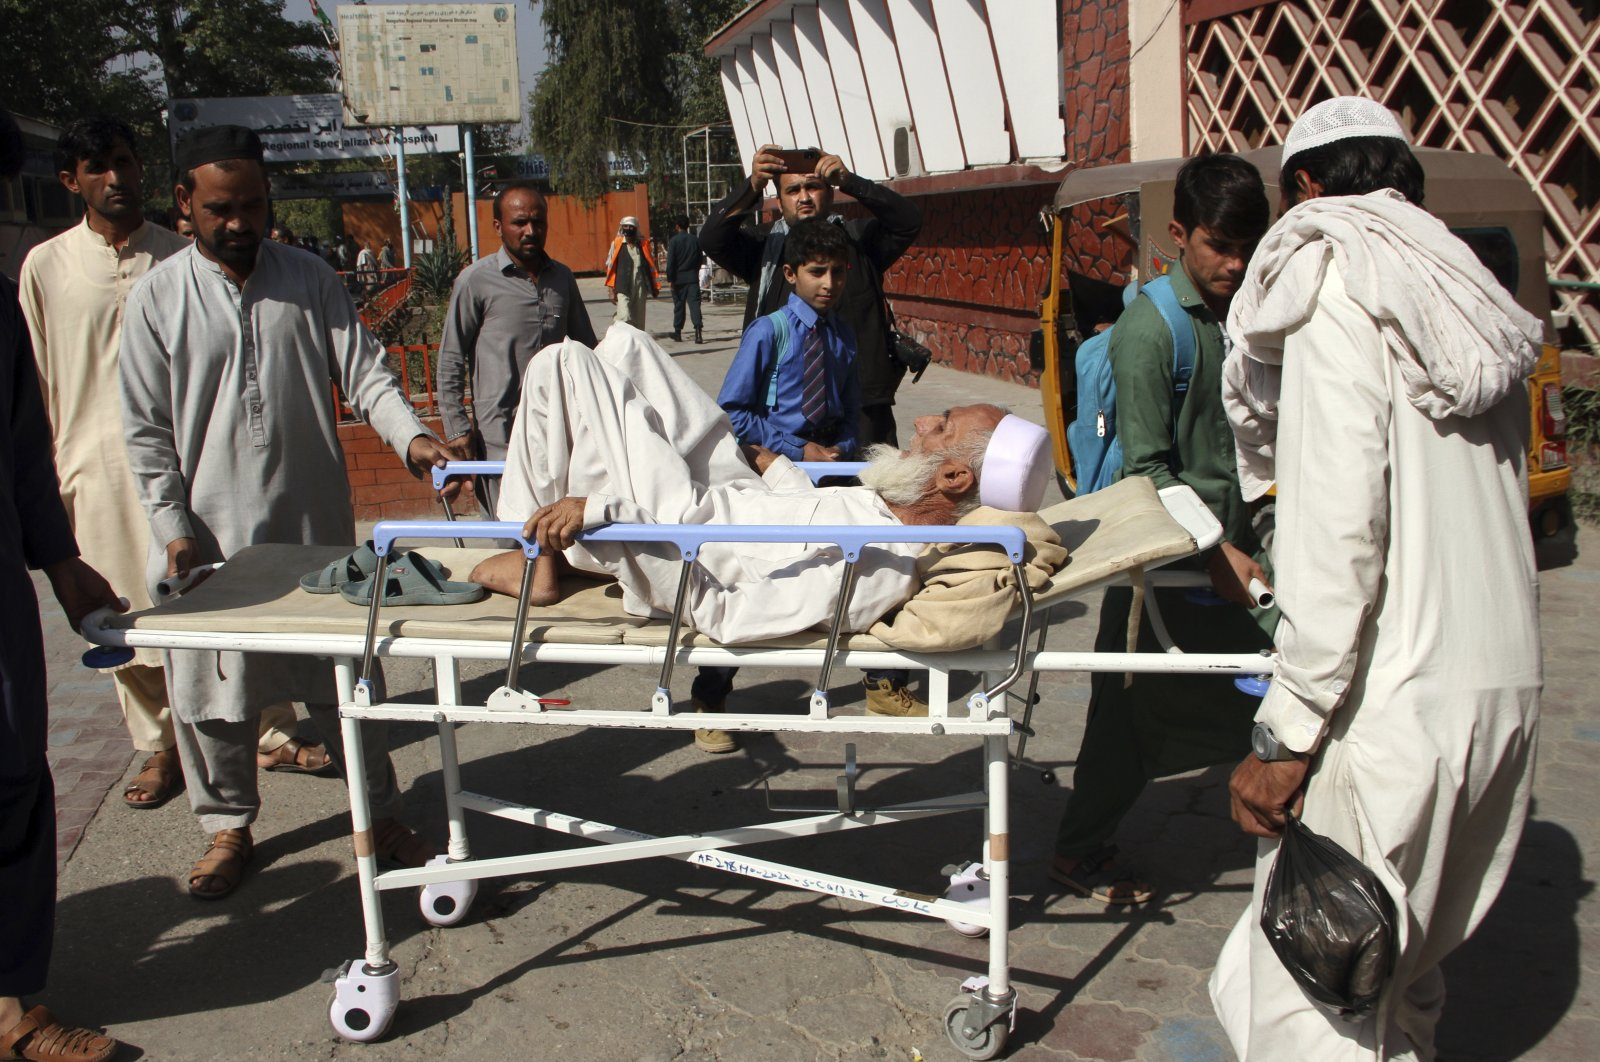 A man injured in a stampede is brought to a hospital in the city of Jalalabad east of Kabul, Afghanistan, Oct. 21, 2020. (AP Photo)